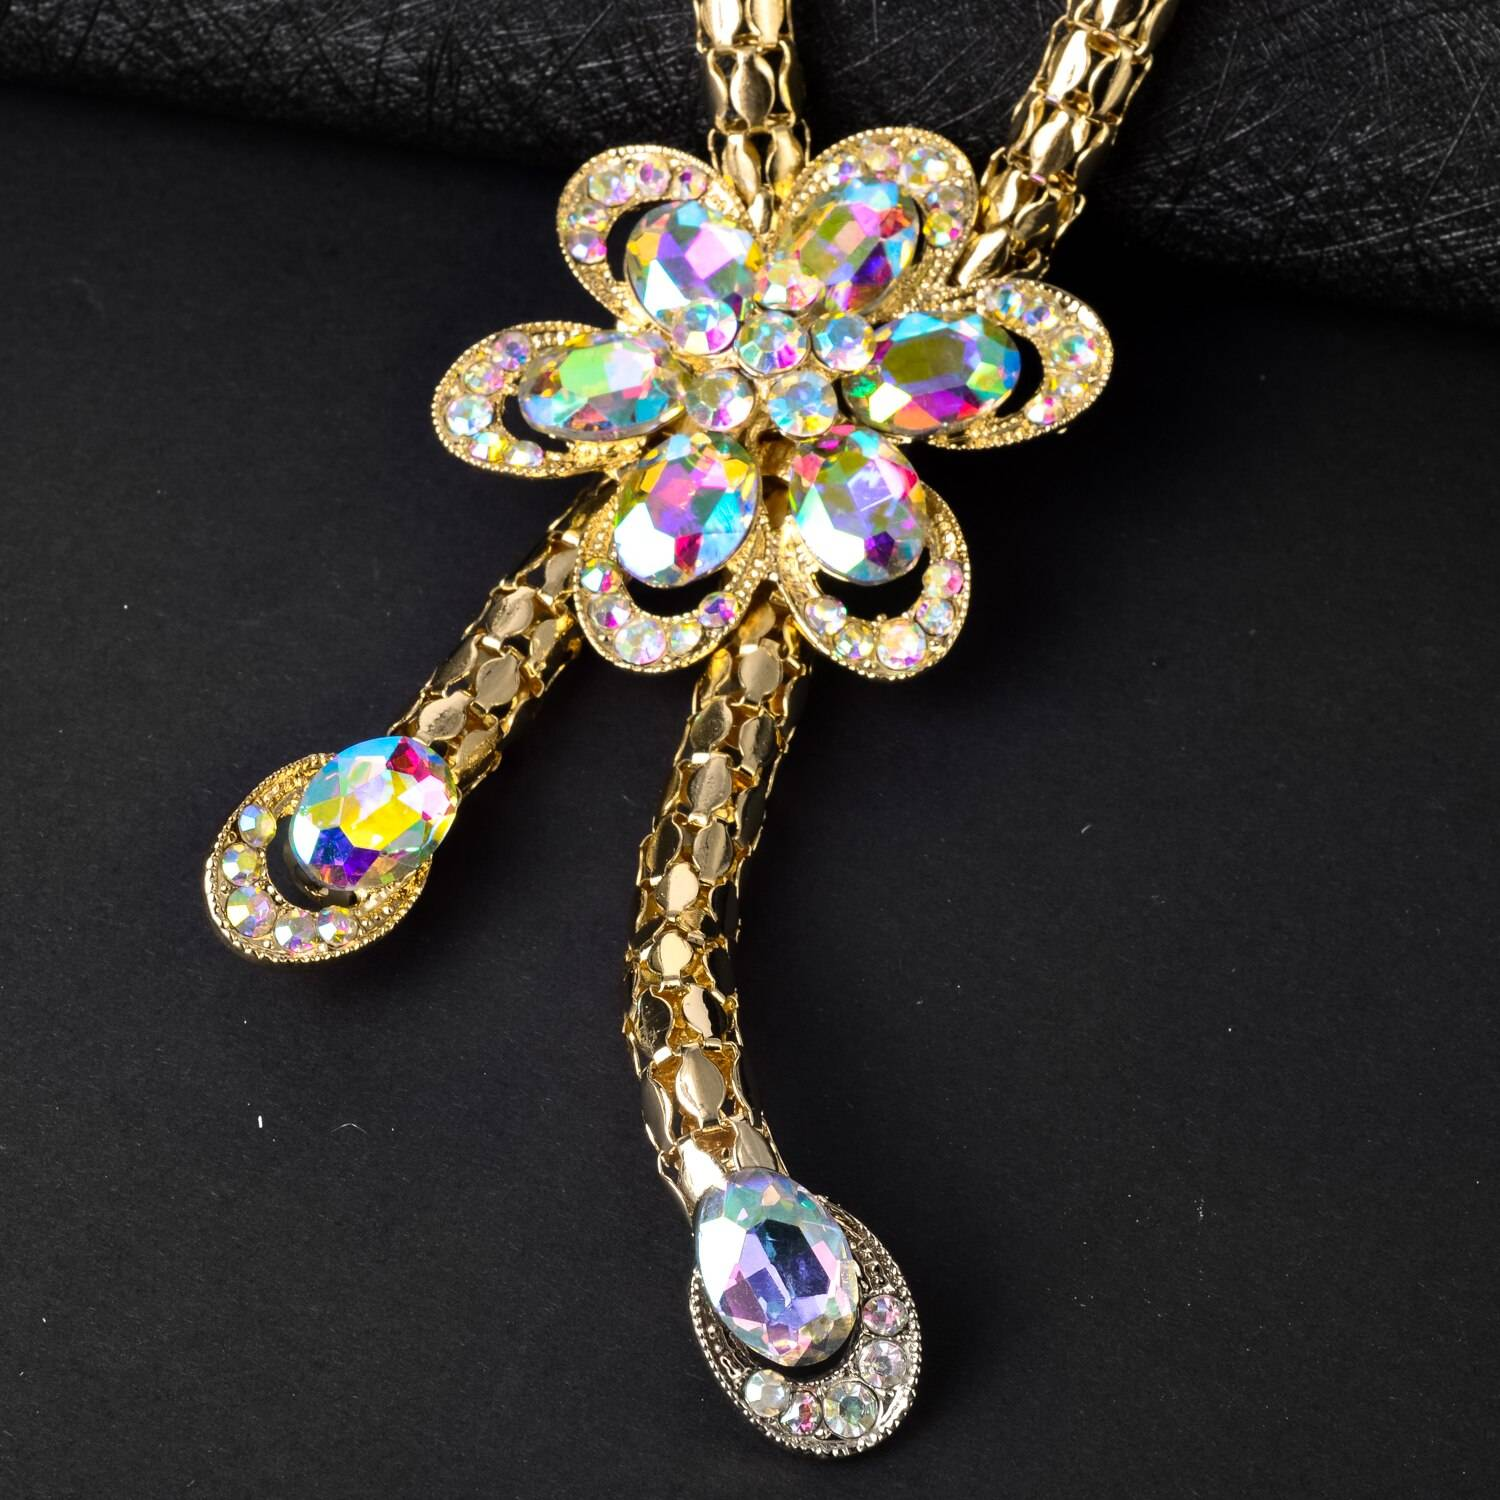 Sunny Jewelry Sets Hot Sale Bridal Wedding Flower Zircon Earrings Necklace Bracelet Ring For Women Romantic Trendy Gift Party Wedding Jewellery Set 8d255f28538fbae46aeae7: Jewelry Sets